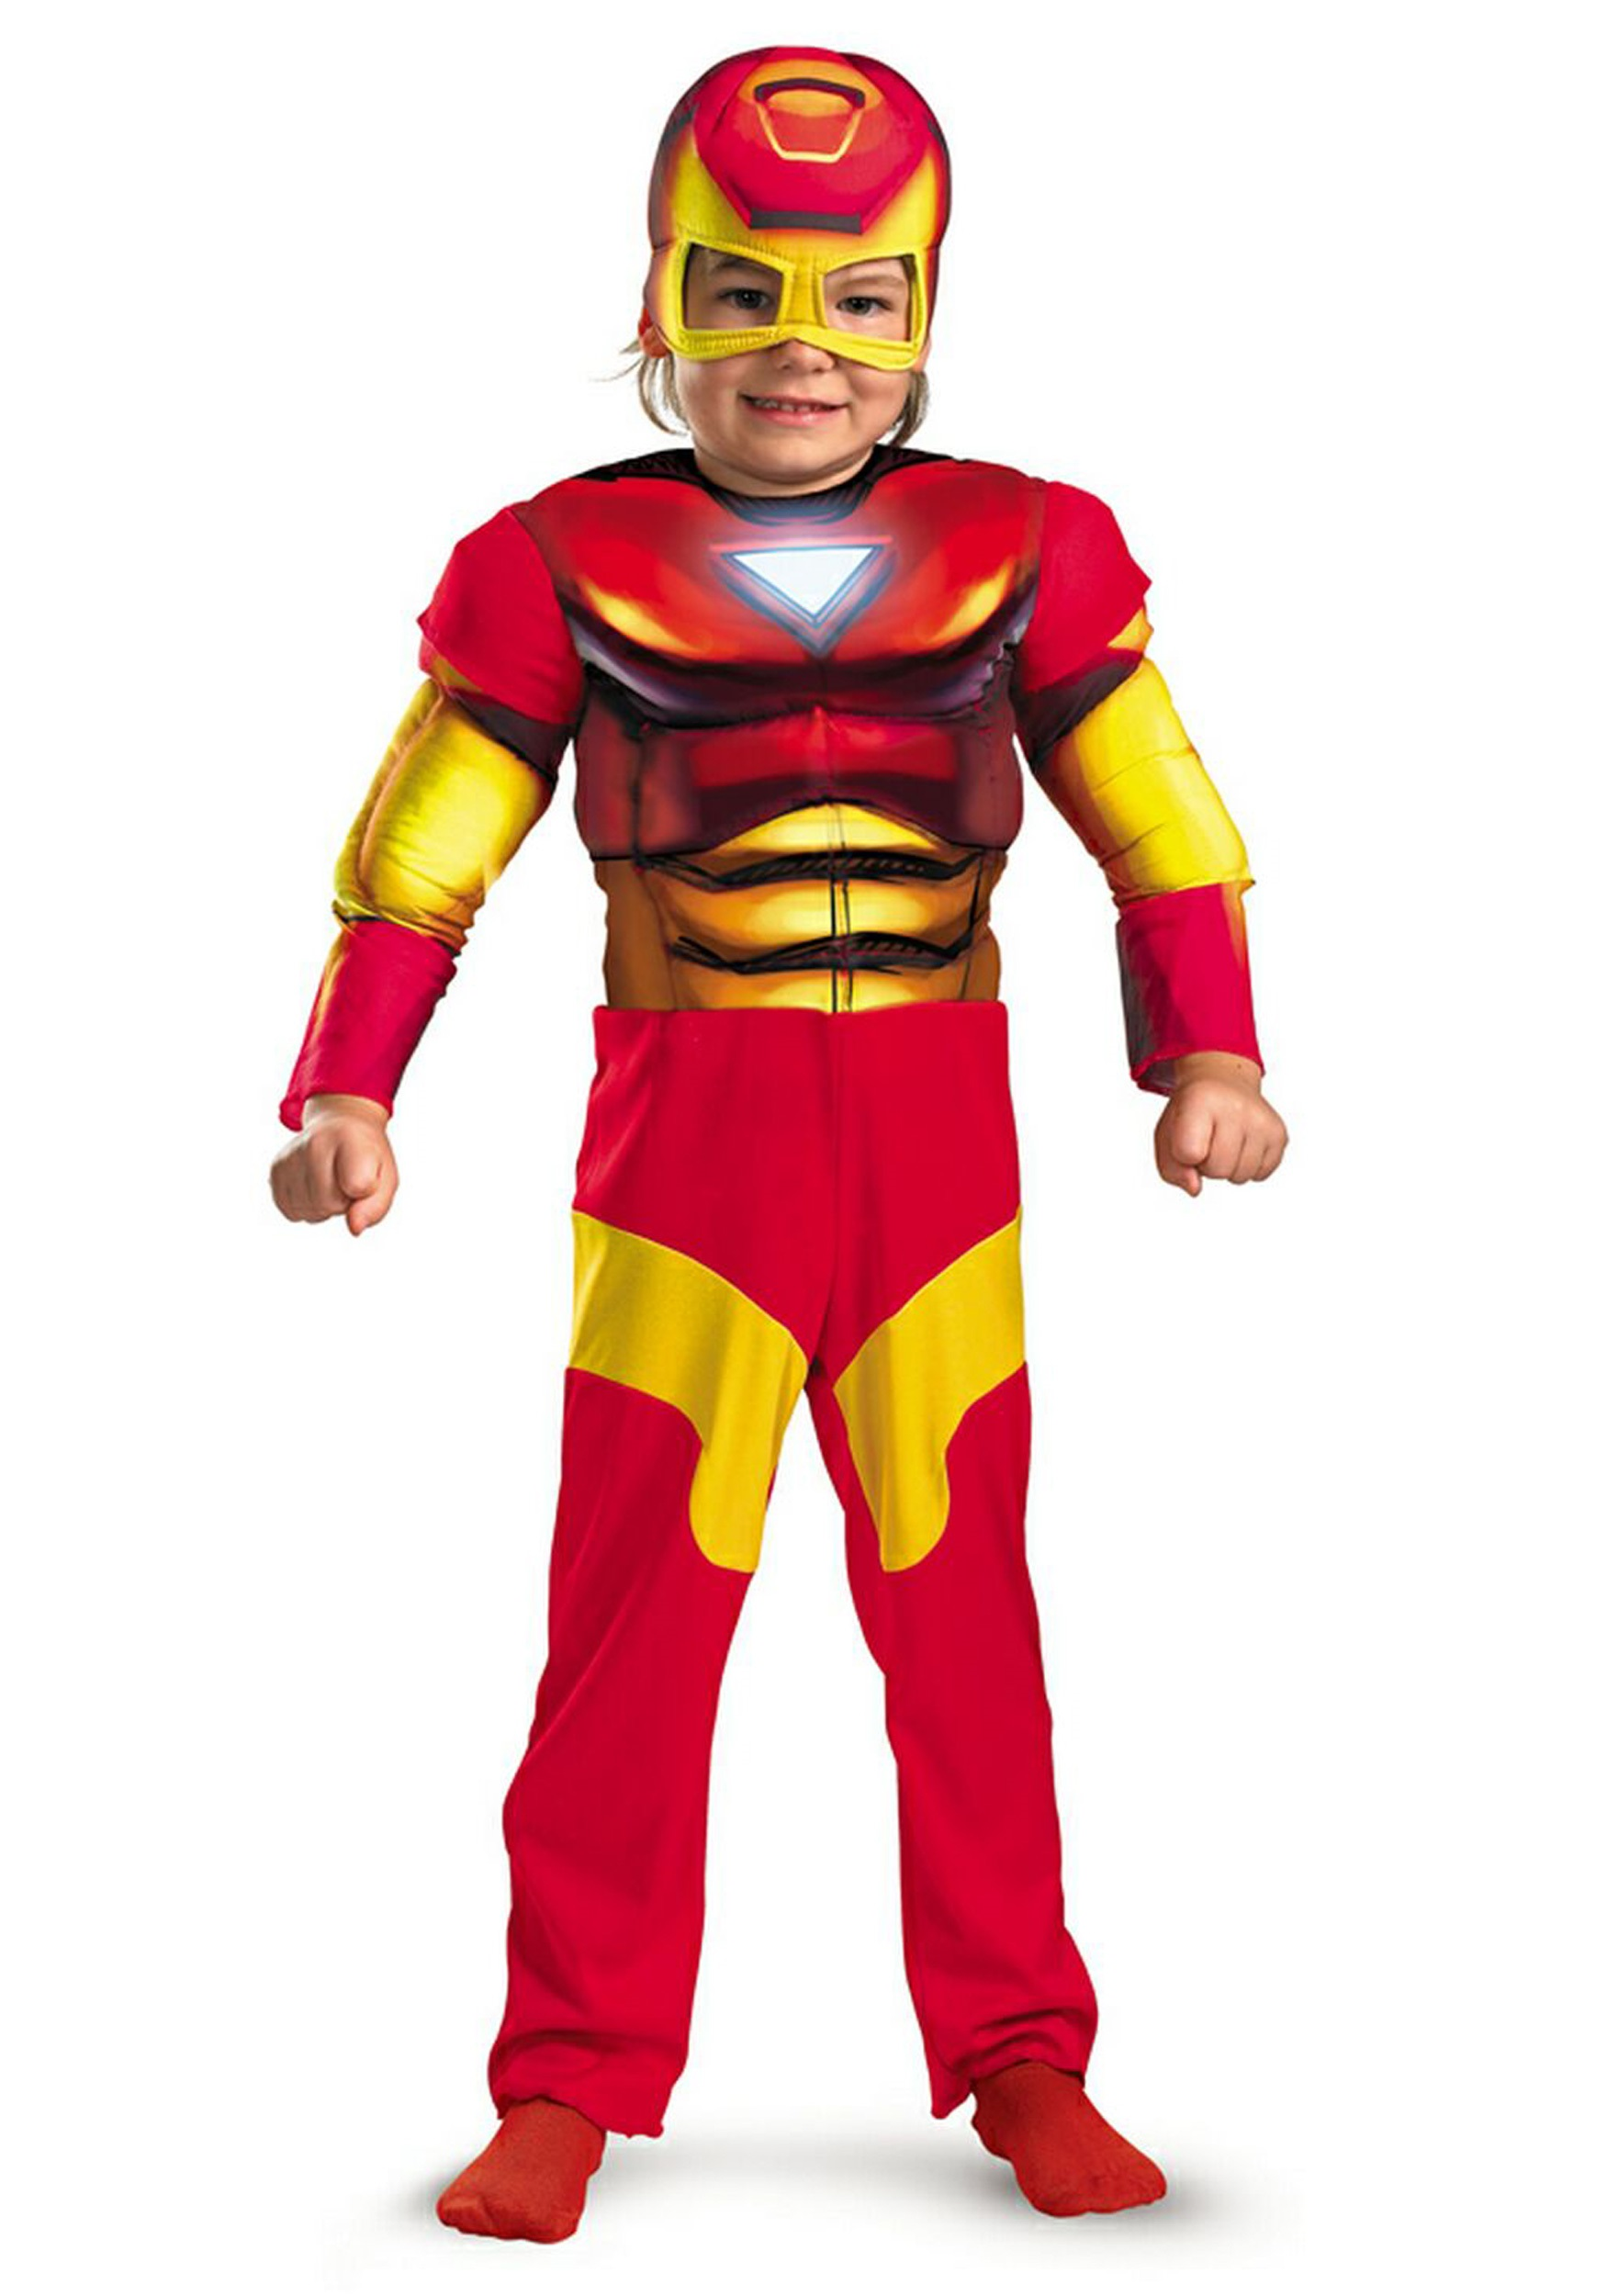 Toddler Muscle Chest Iron Man Costume  sc 1 st  Halloween Costumes & Toddler Muscle Chest Iron Man Costume - Halloween Costumes